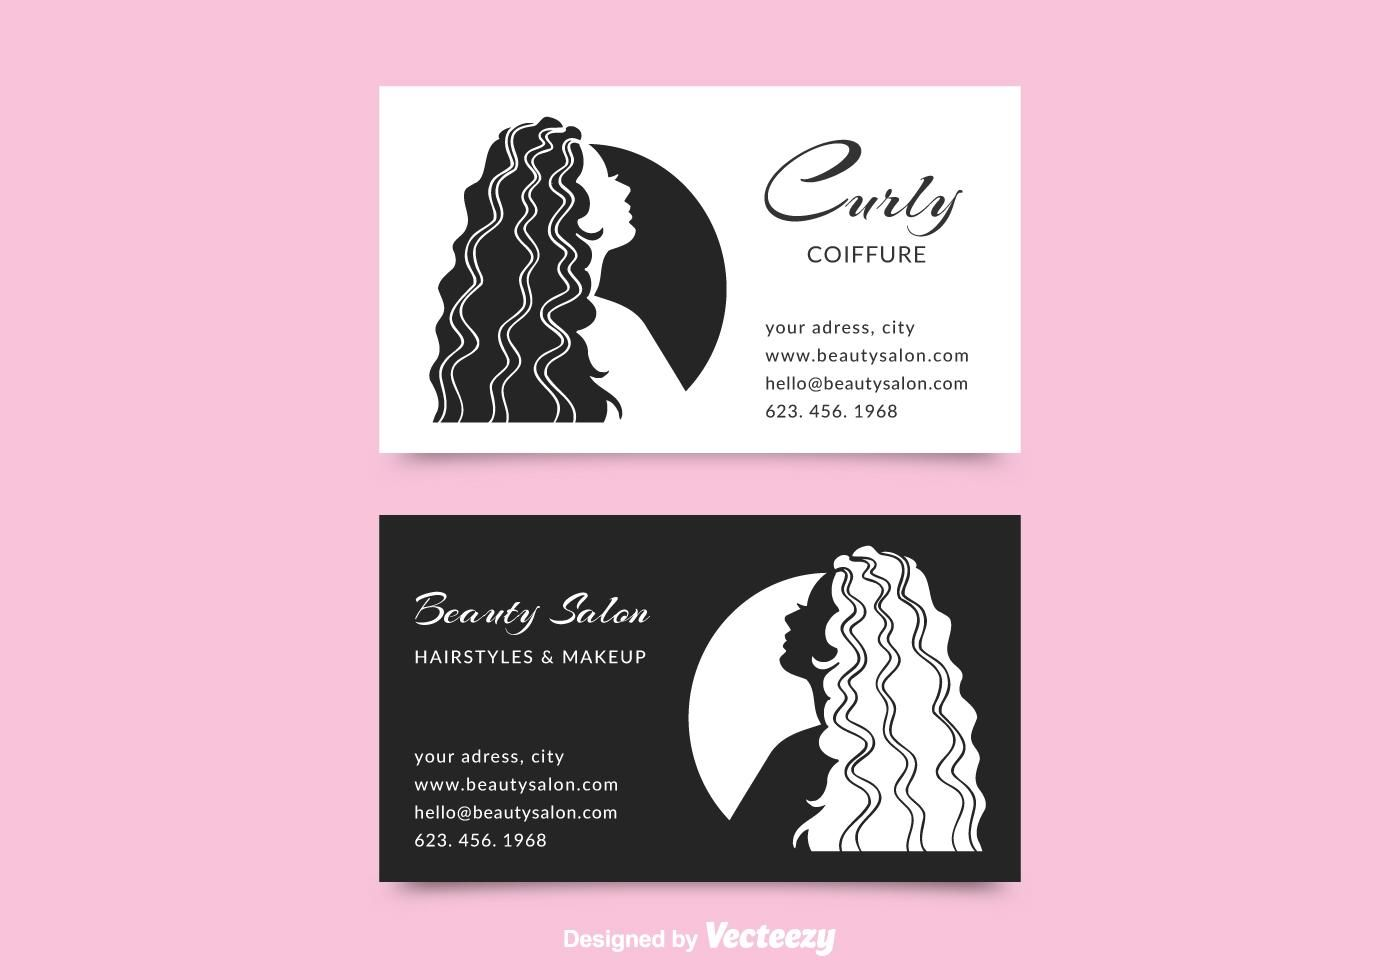 Free Coiffure Business Card Vector Beauty Salon Business Cards Salon Business Cards Free Business Card Templates